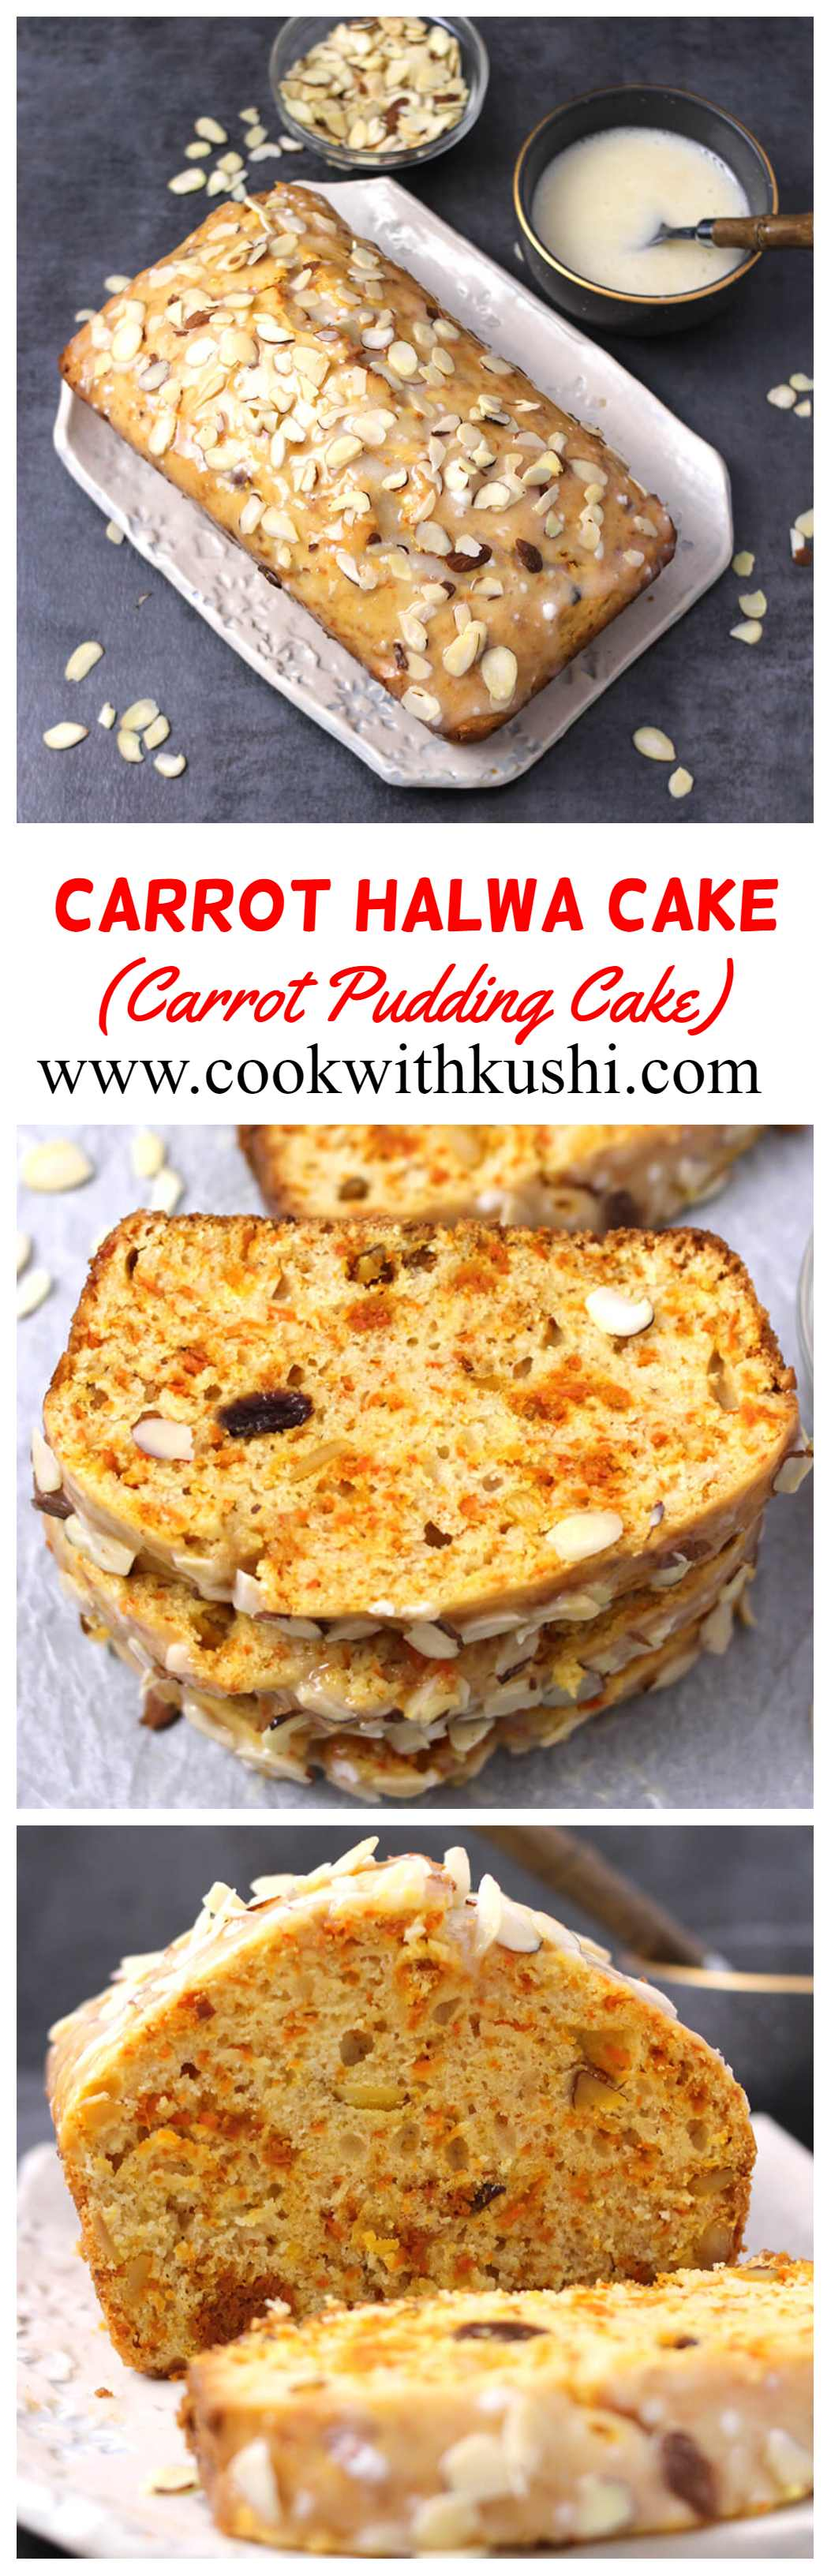 Carrot Halwa Cake Cook With Kushi